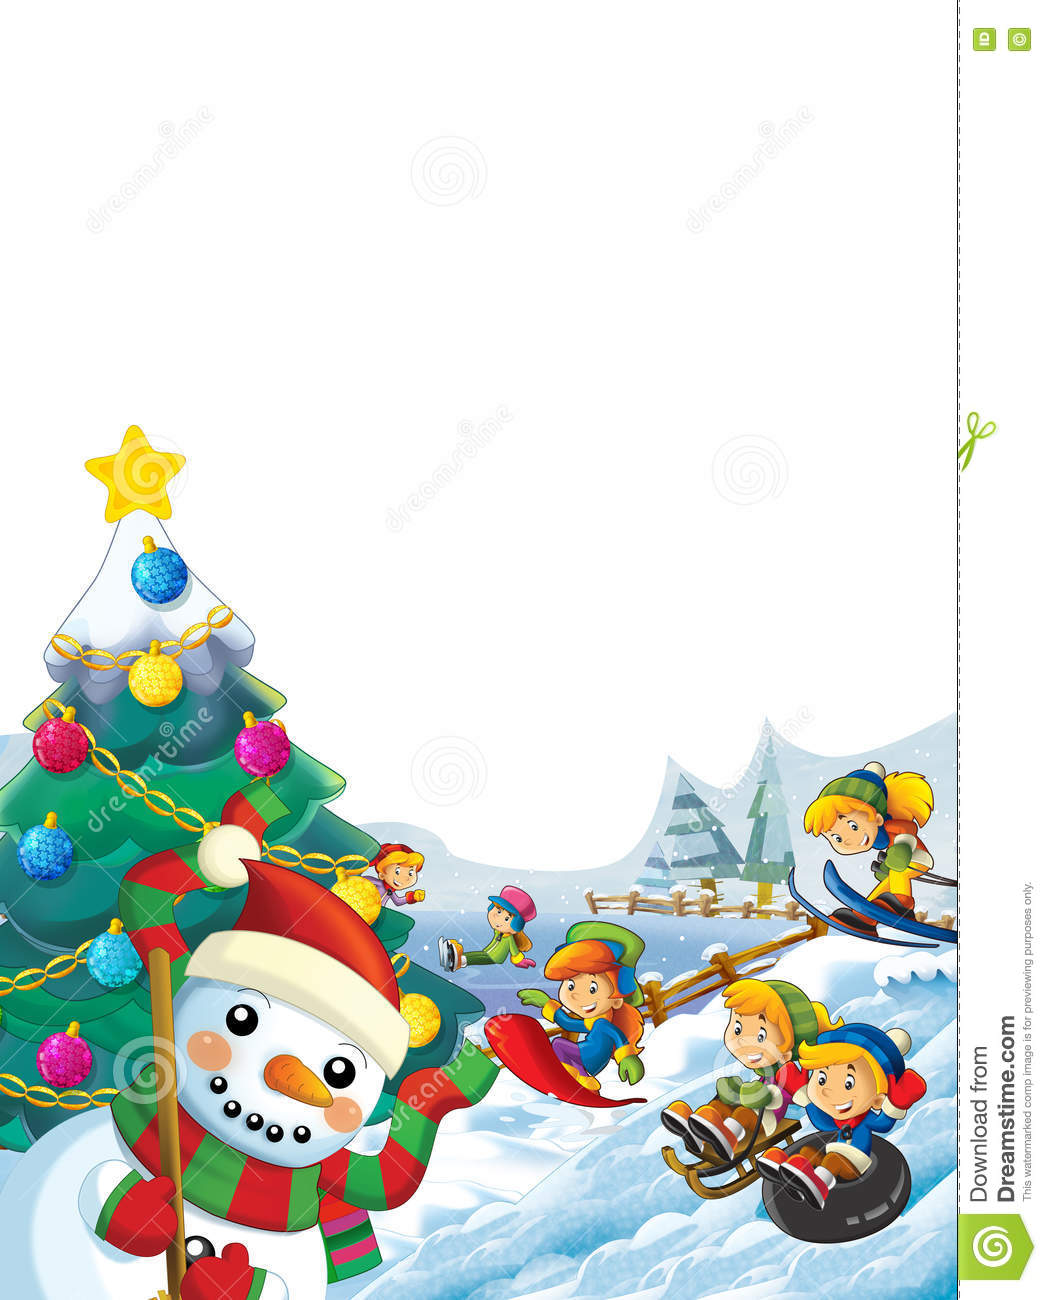 Happy Cartoon Christmas Scene With Happy Kids And Christmas Tree Stock Illustration Illustration Of Portrait Holidays 79367621 Choose from 290+ cartoon christmas tree graphic resources and download in the form of png, eps, ai or psd. dreamstime com